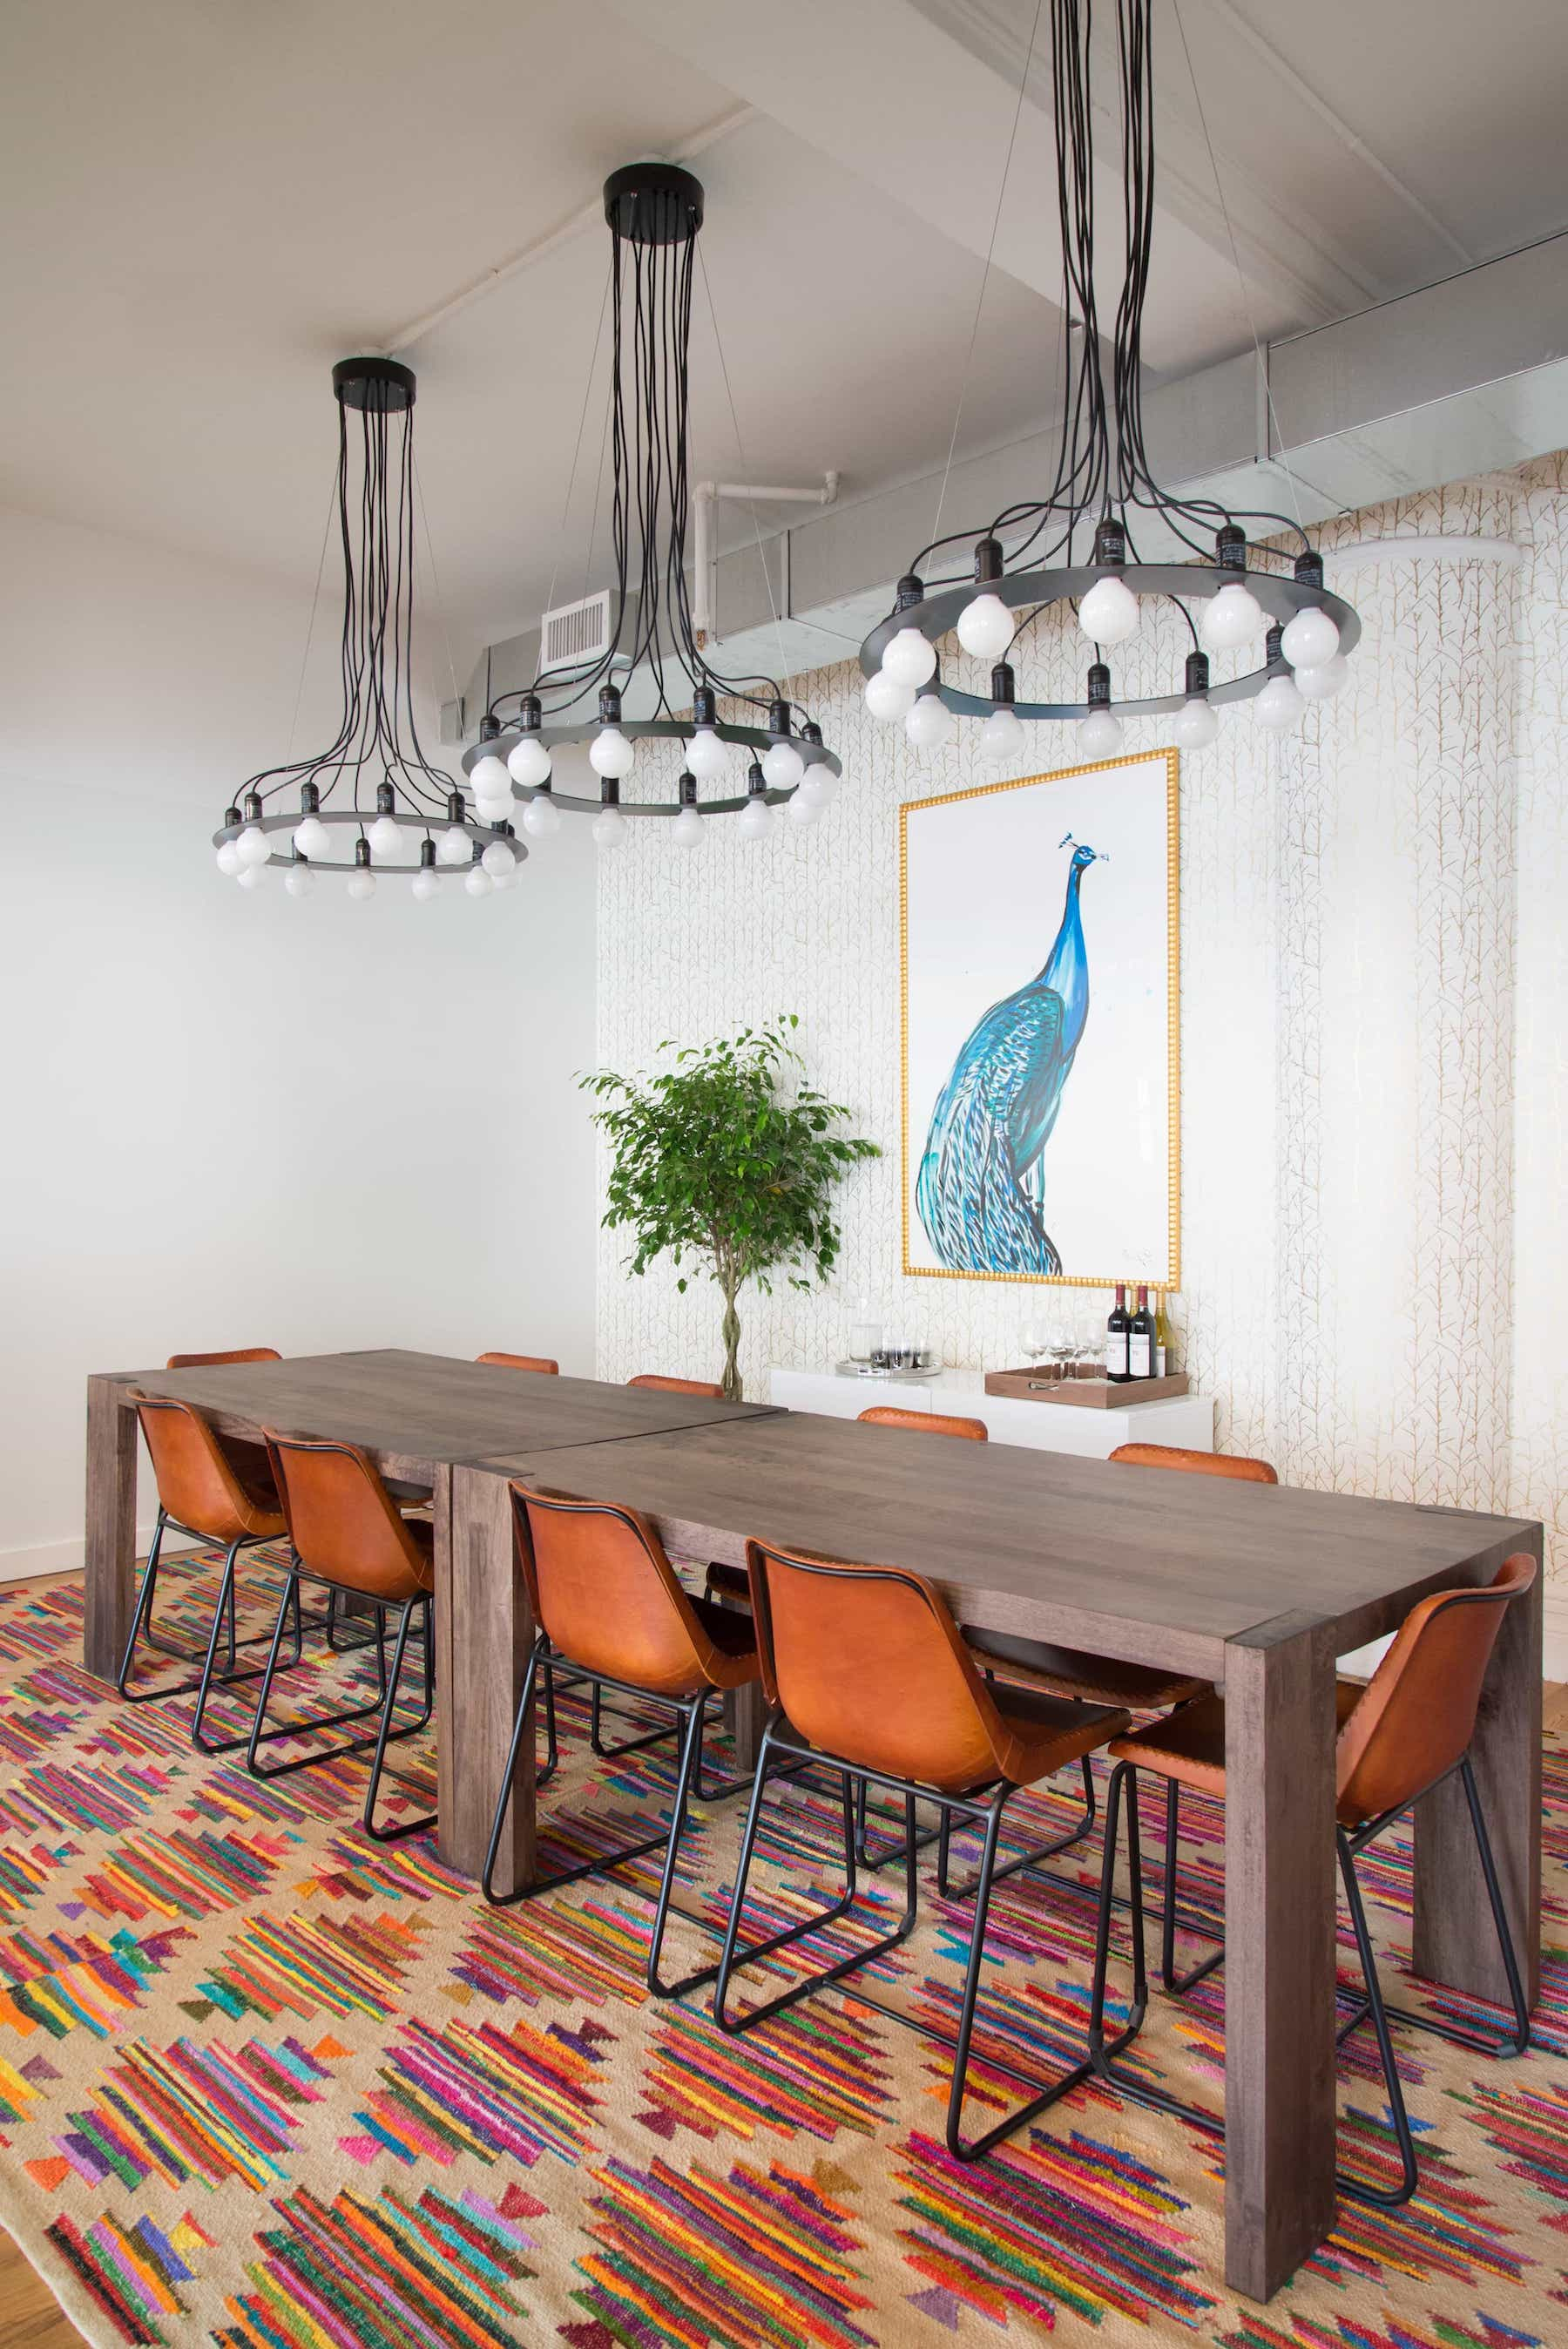 Featured Image Of Multicolored Rug In Contemporary Conference Room With Industrial Style Chandeliers